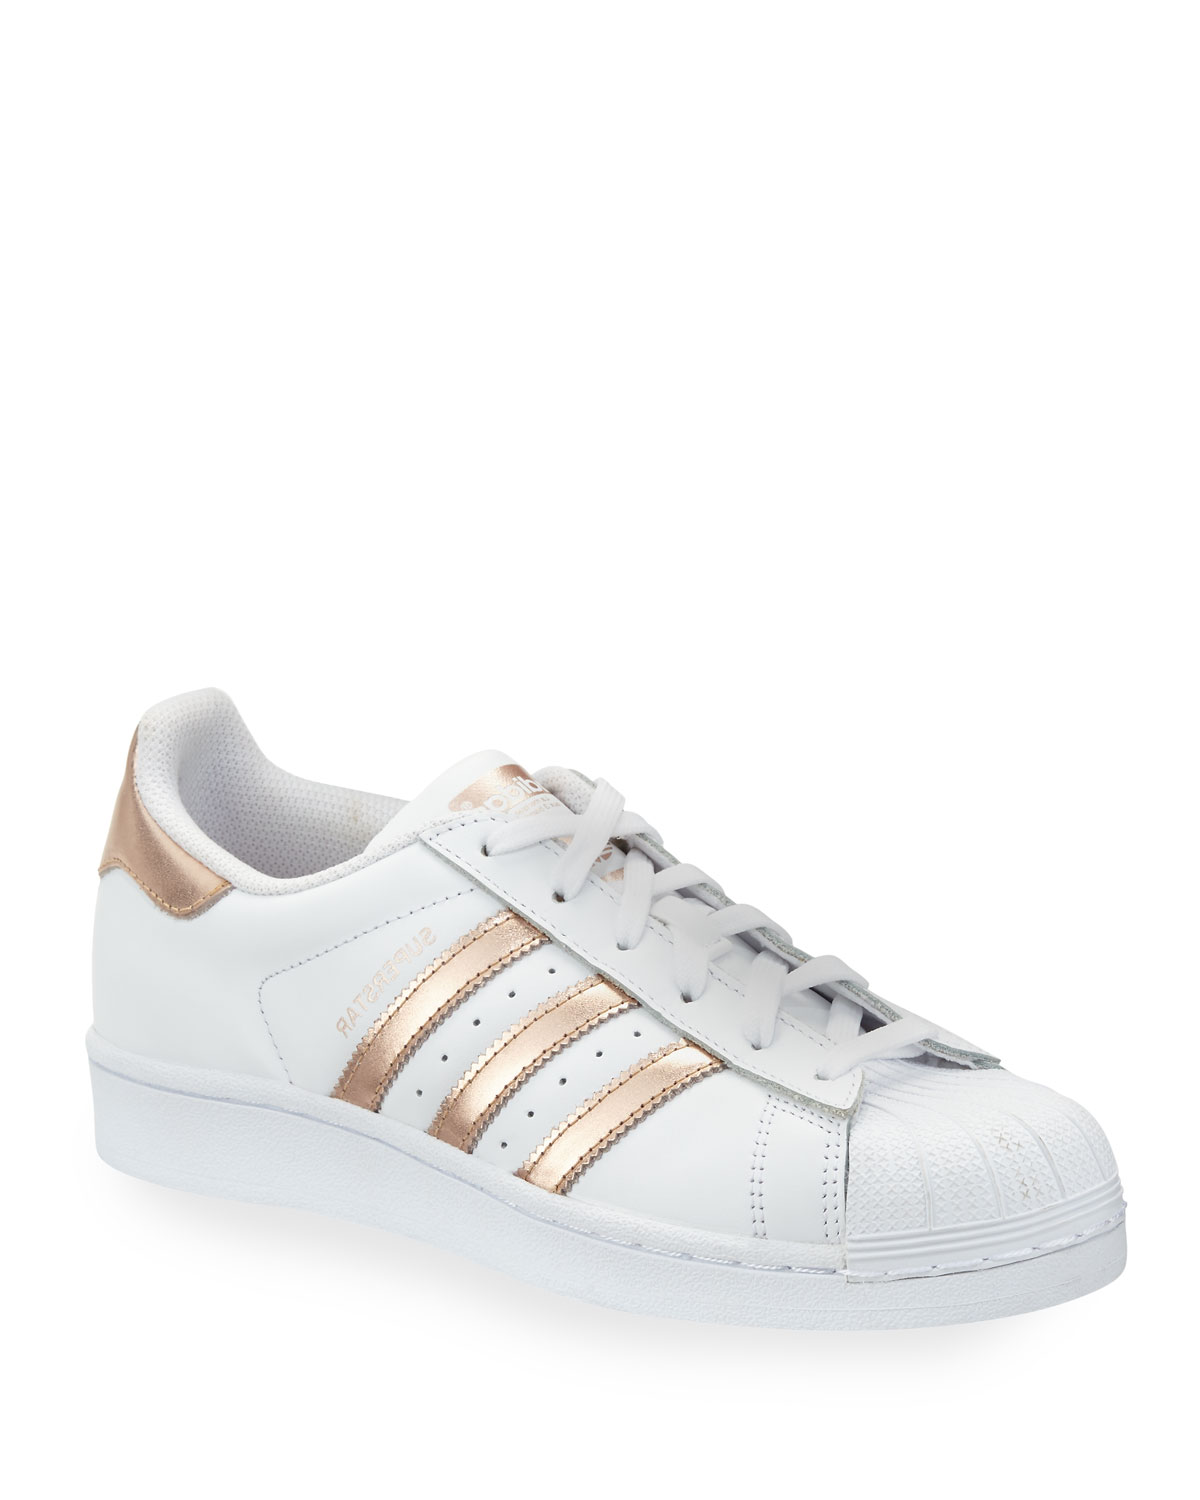 the best attitude 83ce9 0c2b4 Adidas Superstar Original Fashion Sneakers, White Rose Gold